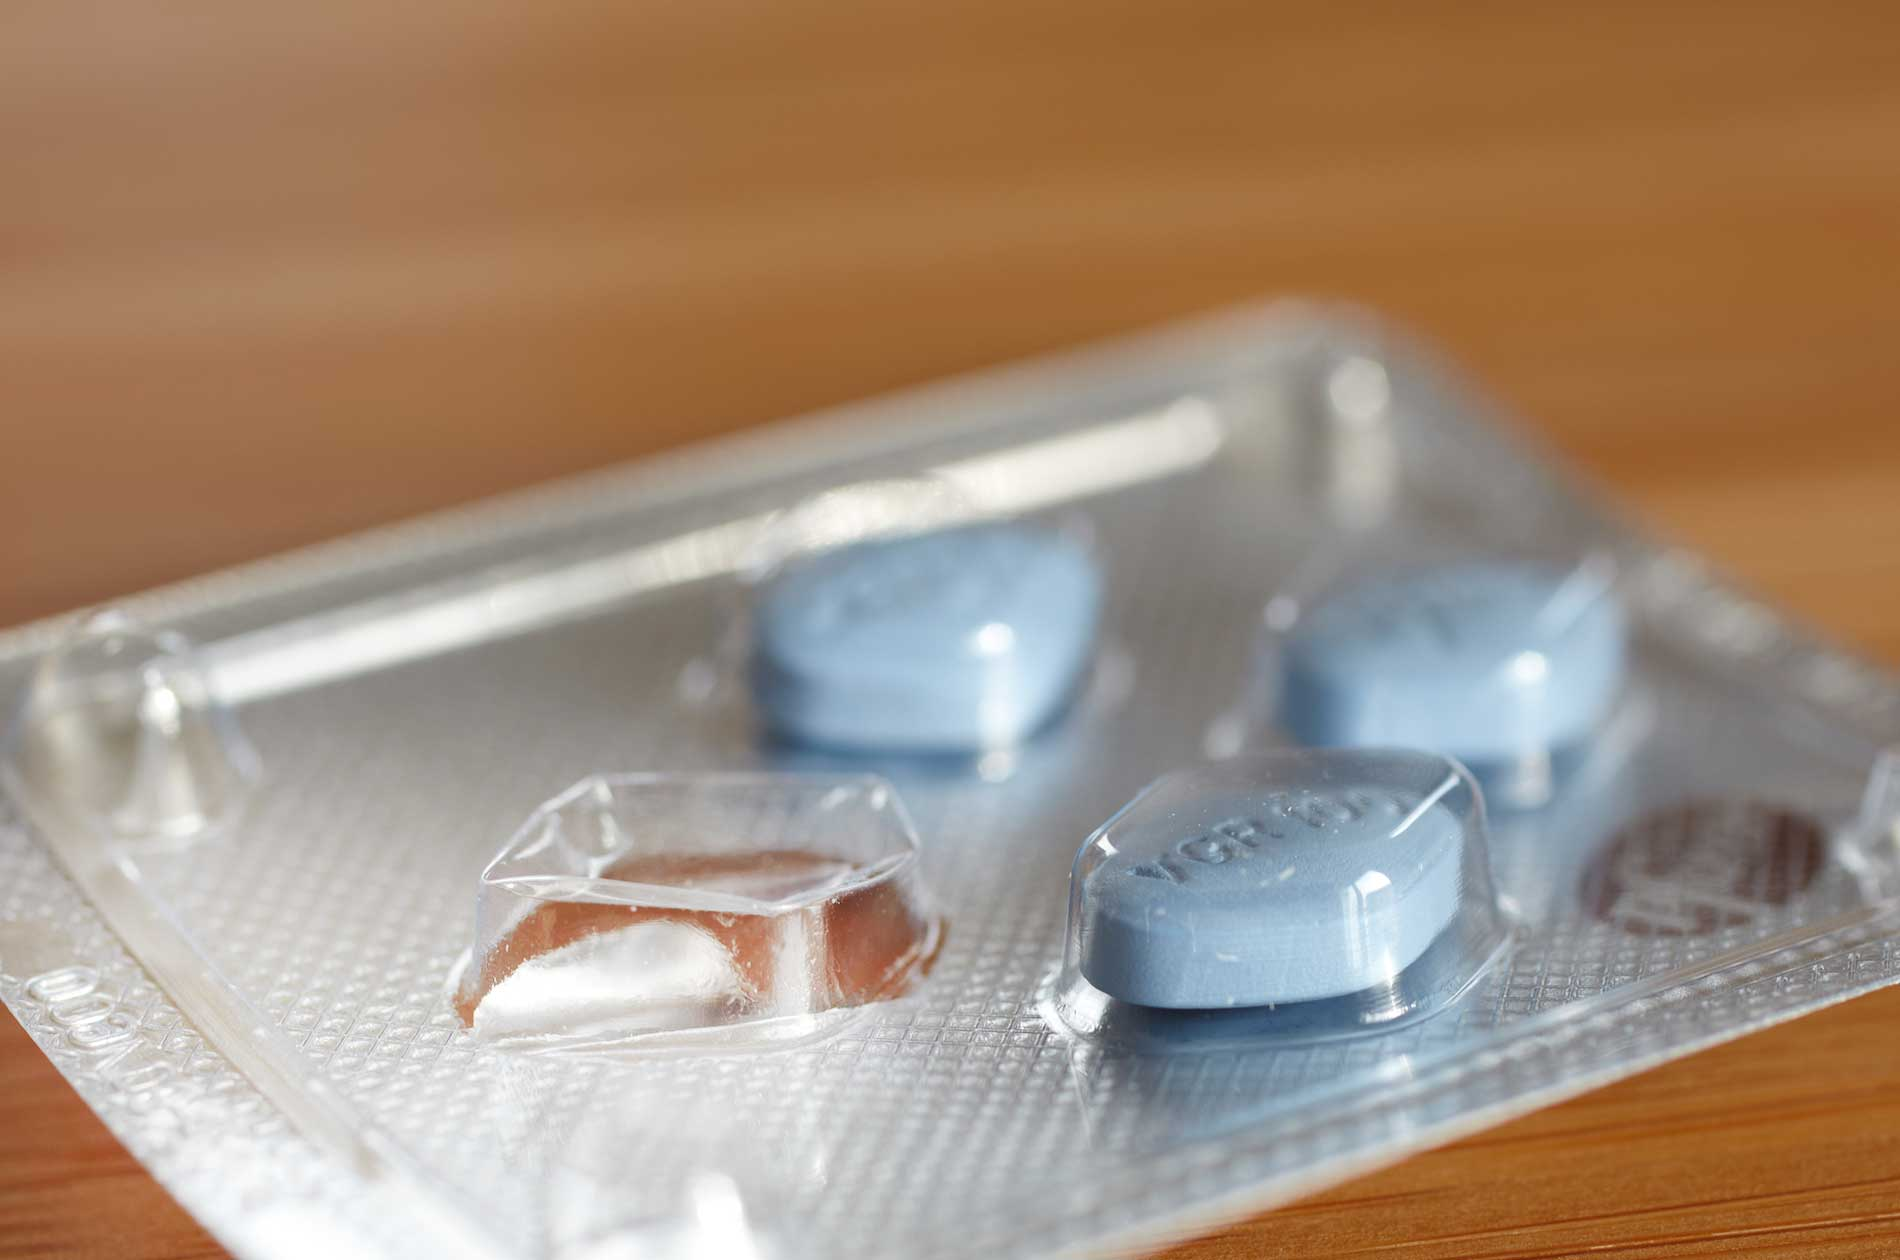 Viagra® pills in packaging